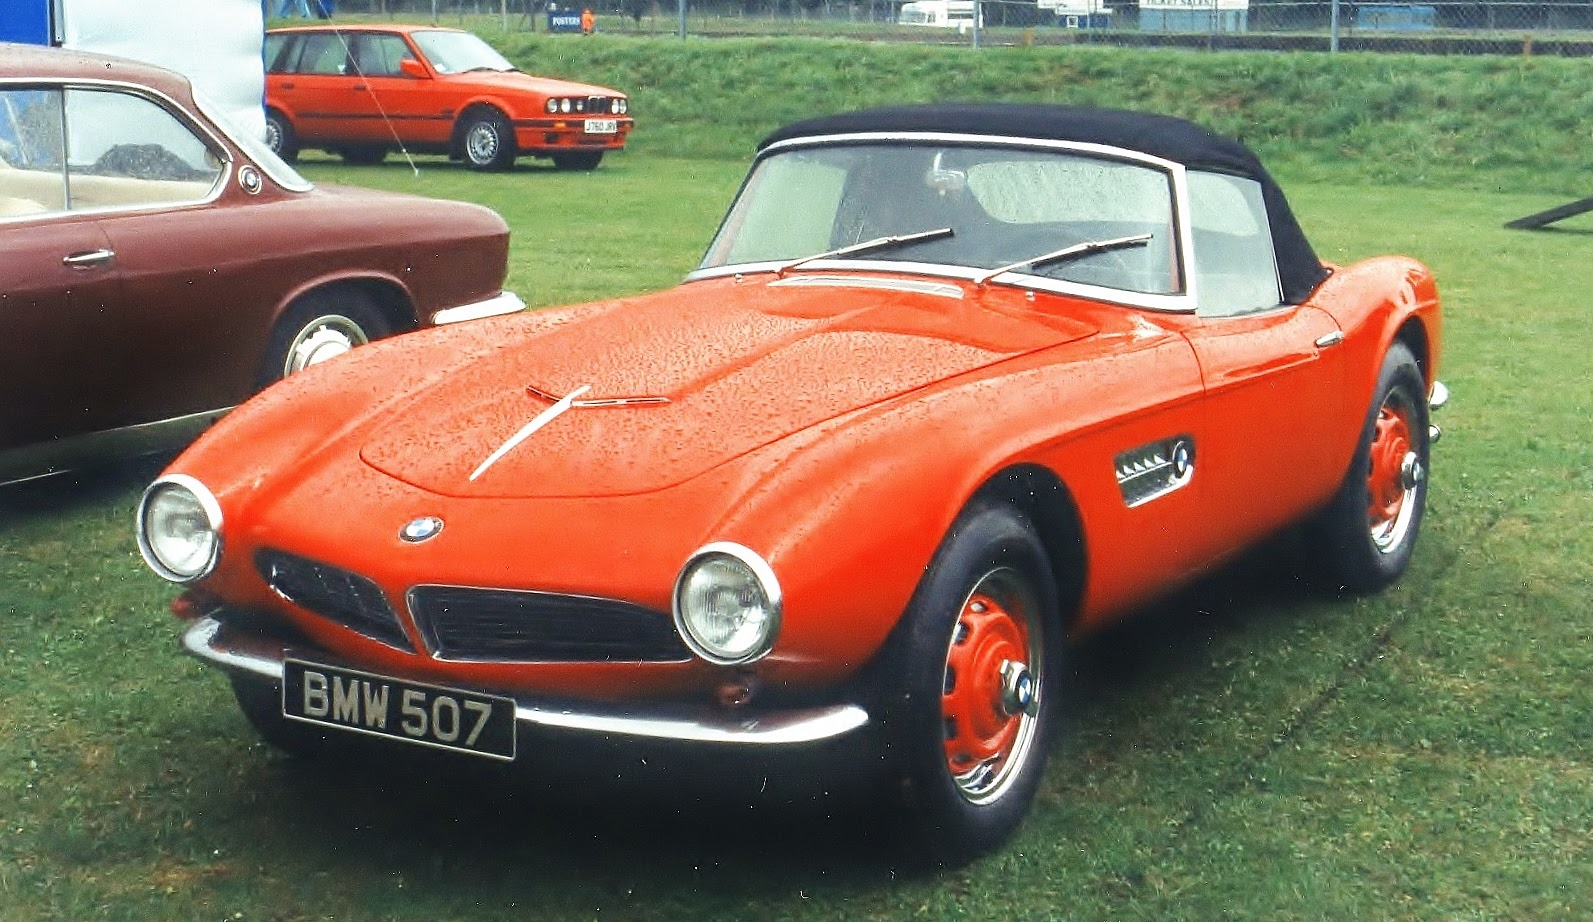 Its A BMW 507 Car With 3168cc V8 Engine And One Of Only 252 Such Cars Produced By Between 1956 1959 When John Surtees Won The 500cc